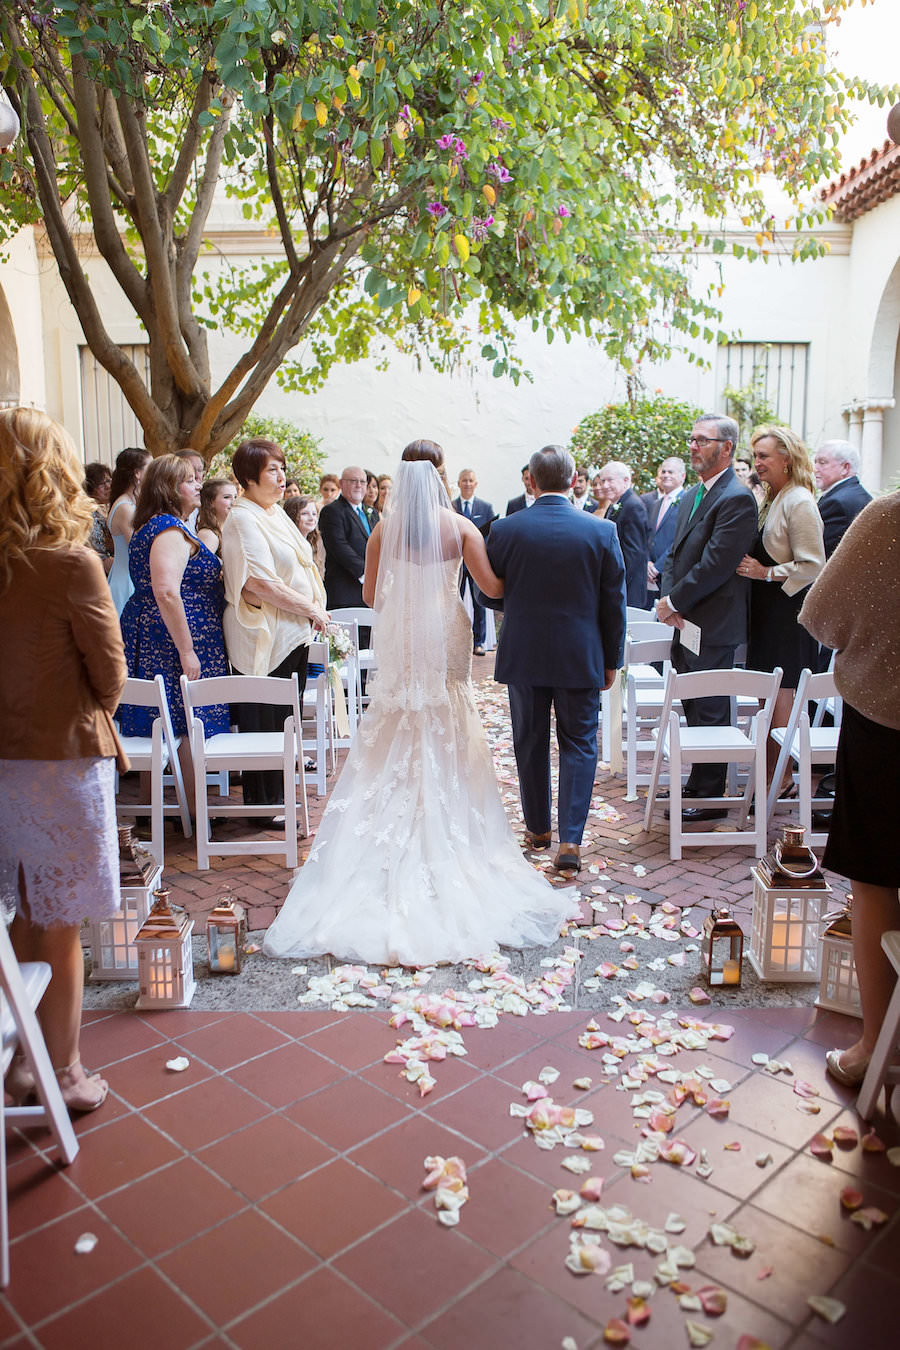 Bride and Father Walking Down Rose Petal Strewn Aisle with White and Gold Candle Holders at Modern Elegant Blush Wedding | St. Petersburg Wedding Photographer Kristen Marie Photography | Wedding Venue Museum of Fine Arts St Pete